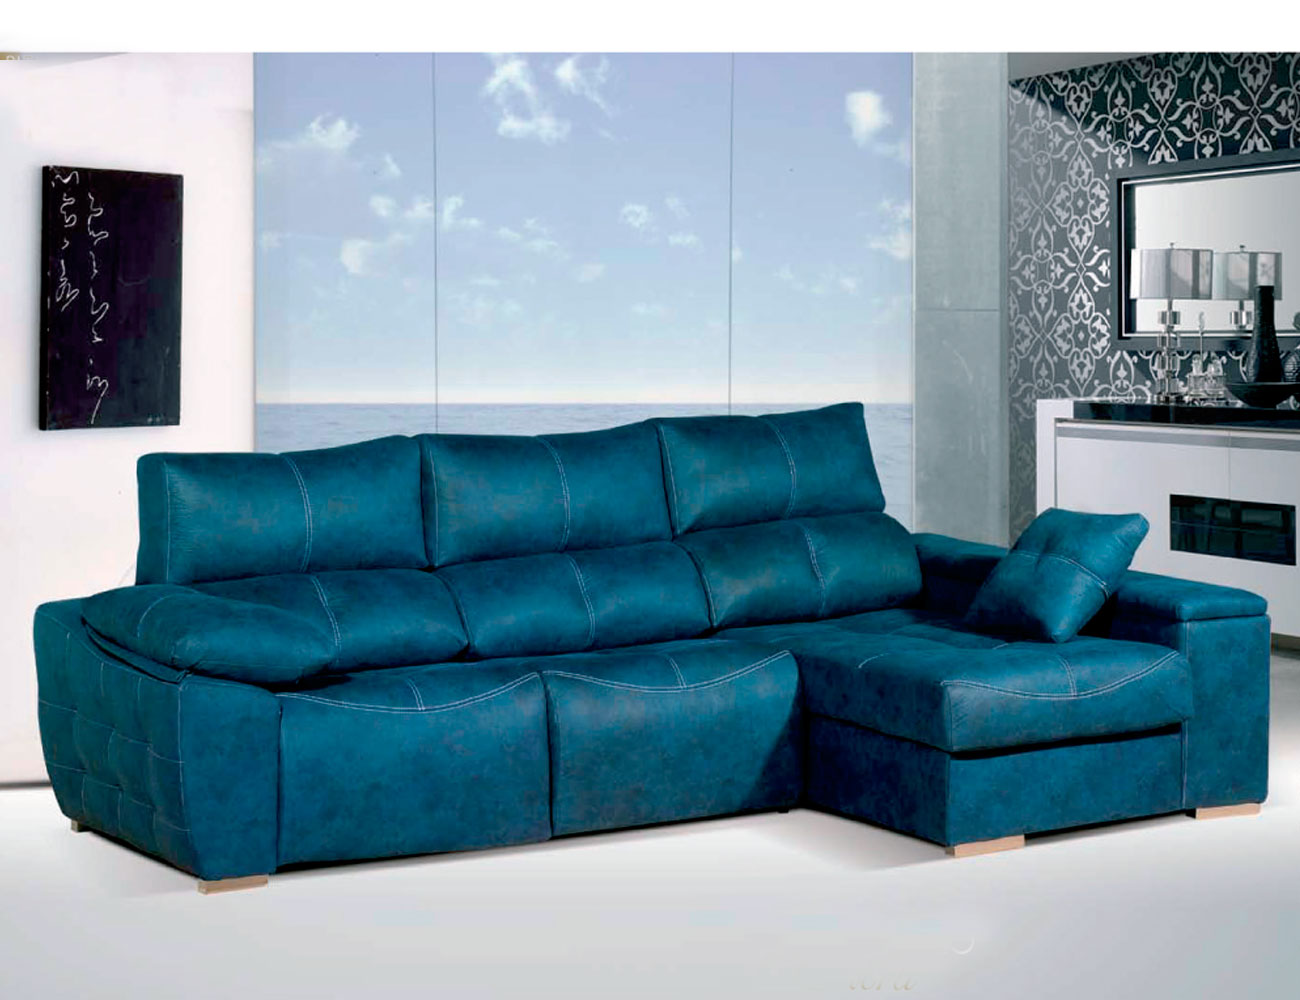 Sofa chaiselongue relax 2 motores anti manchas turquesa25